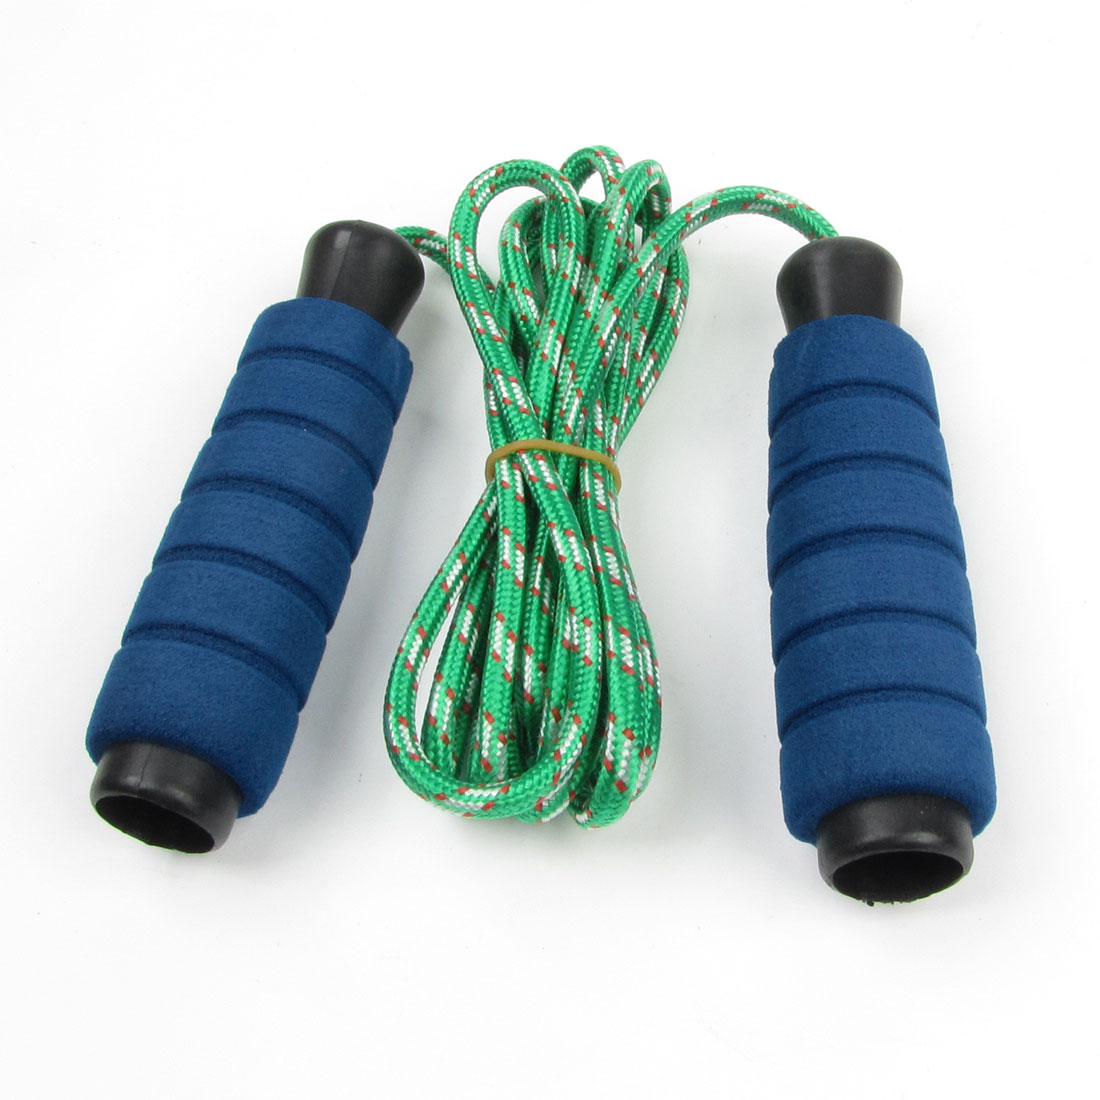 Green Braided Cord Blue Sponge Antislip Grip Skipping Jumping Skip Rope 7.2Ft